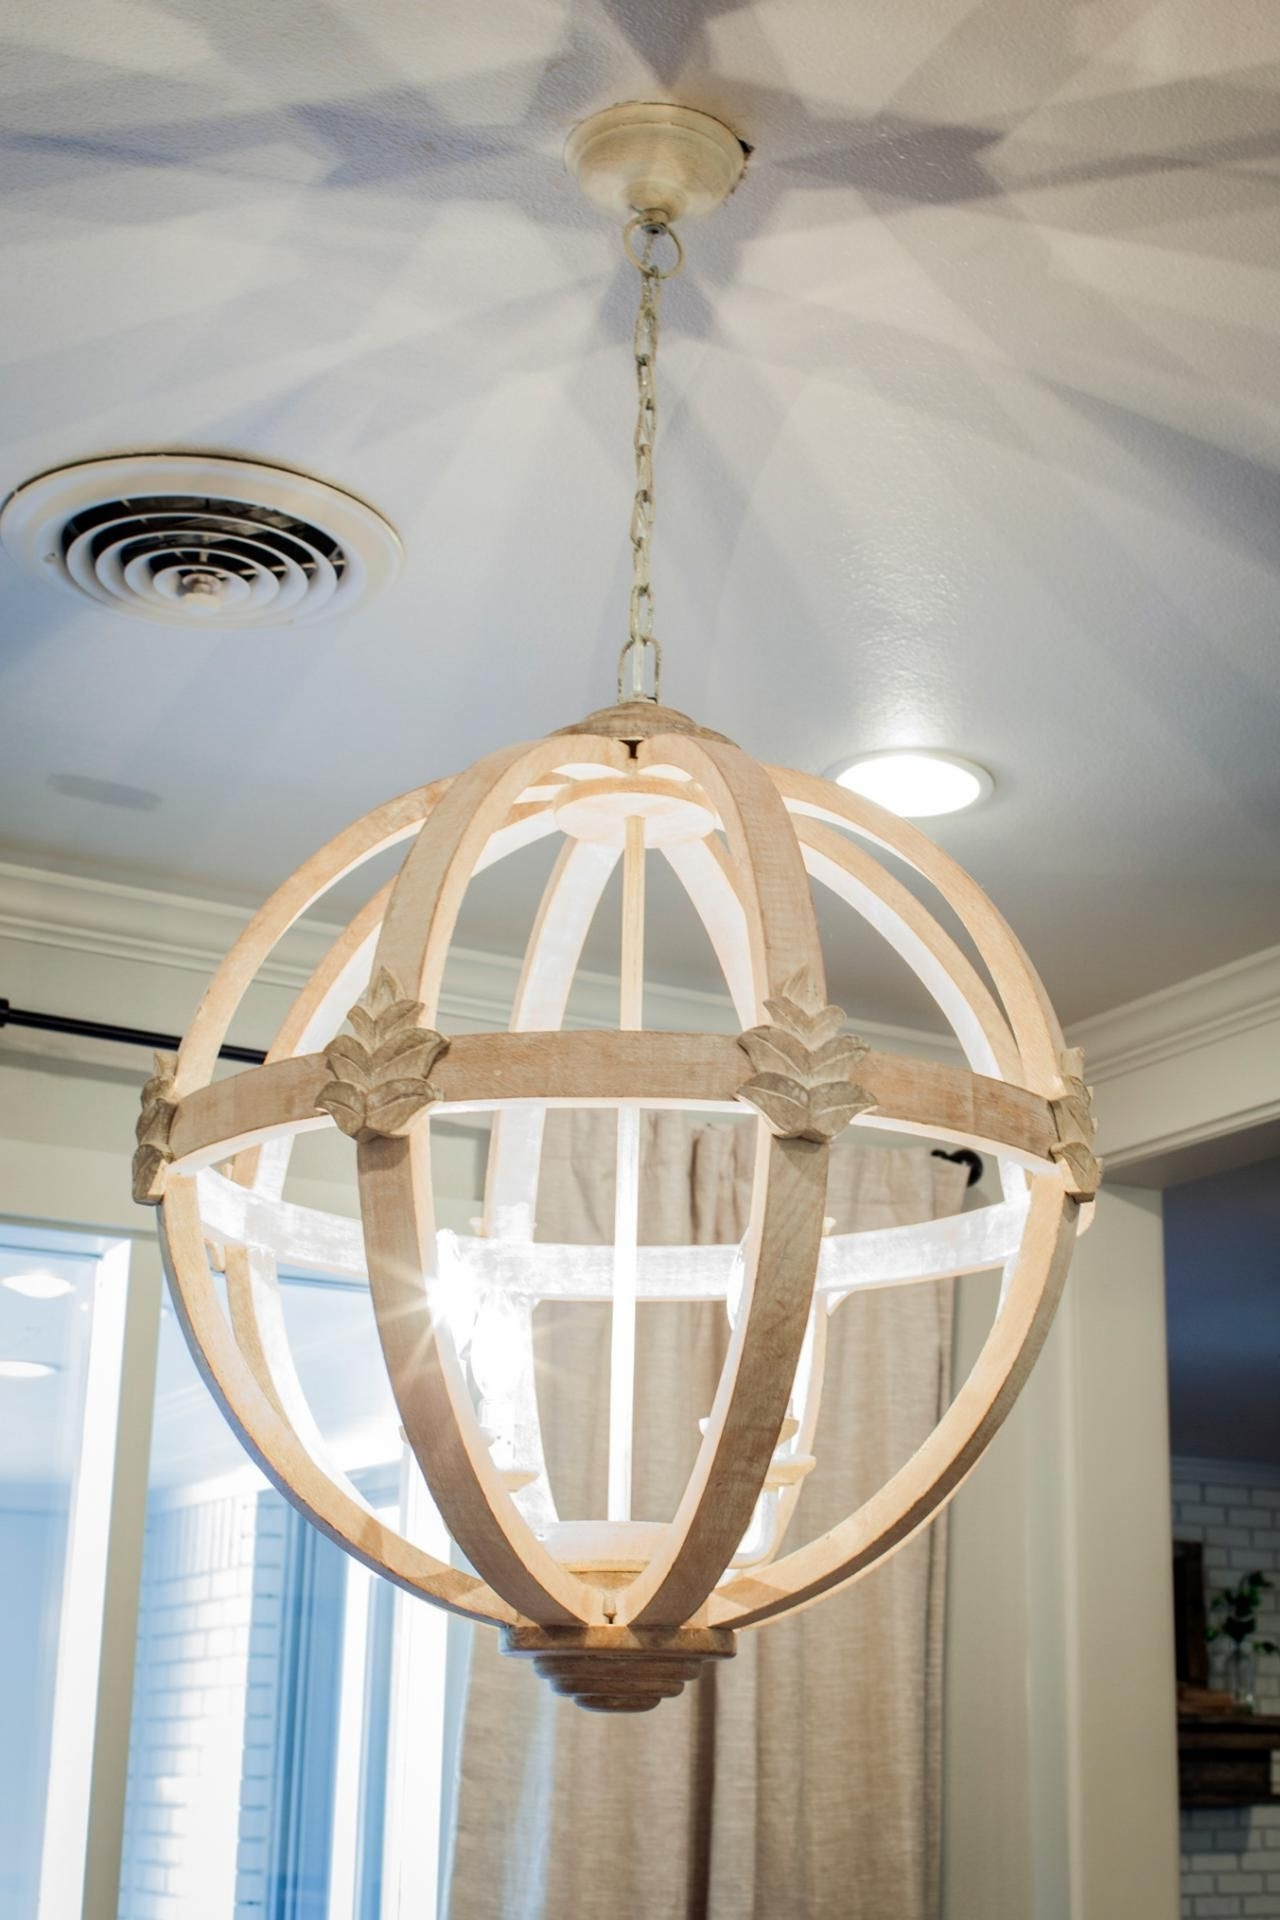 Newest 11 Ways To Get The Fixer Upper Look In Your Home – Page 4 Of 4 With Asian Chandeliers (View 10 of 20)